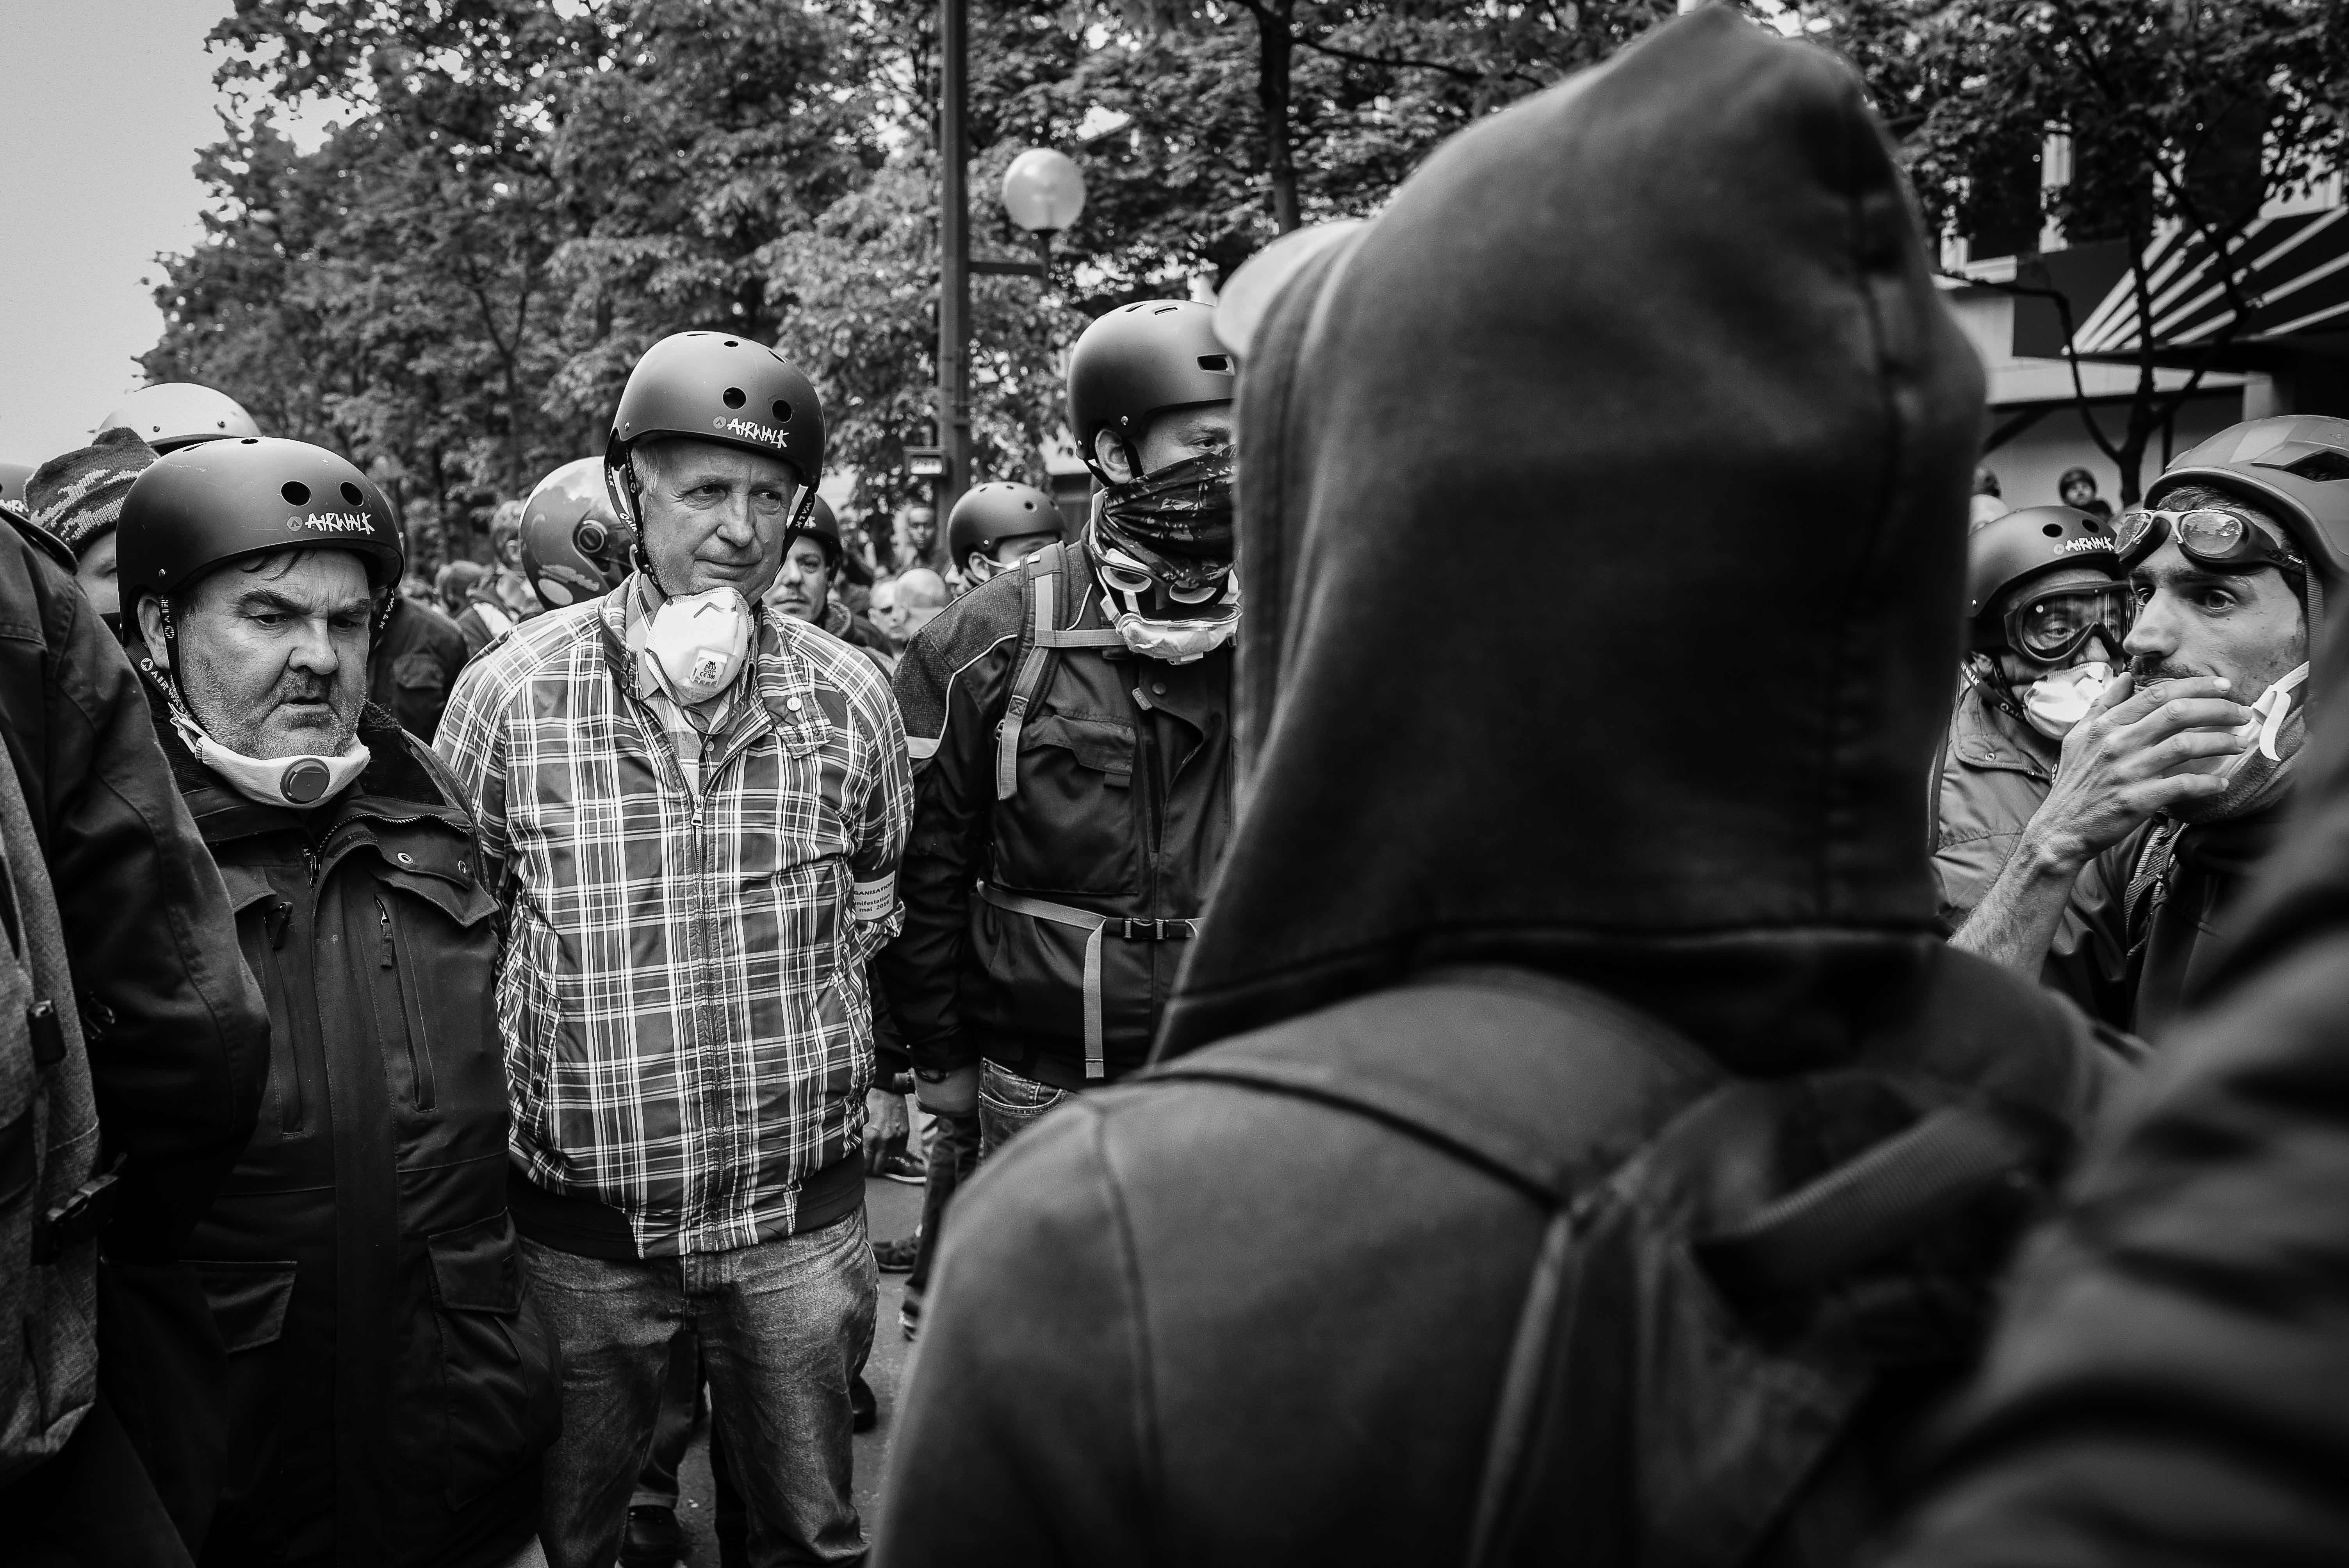 A showdown between the security personnel of the CGT and members of the cortège de tête. Paris, 17 May 2016. Credit: Laurent Gayer